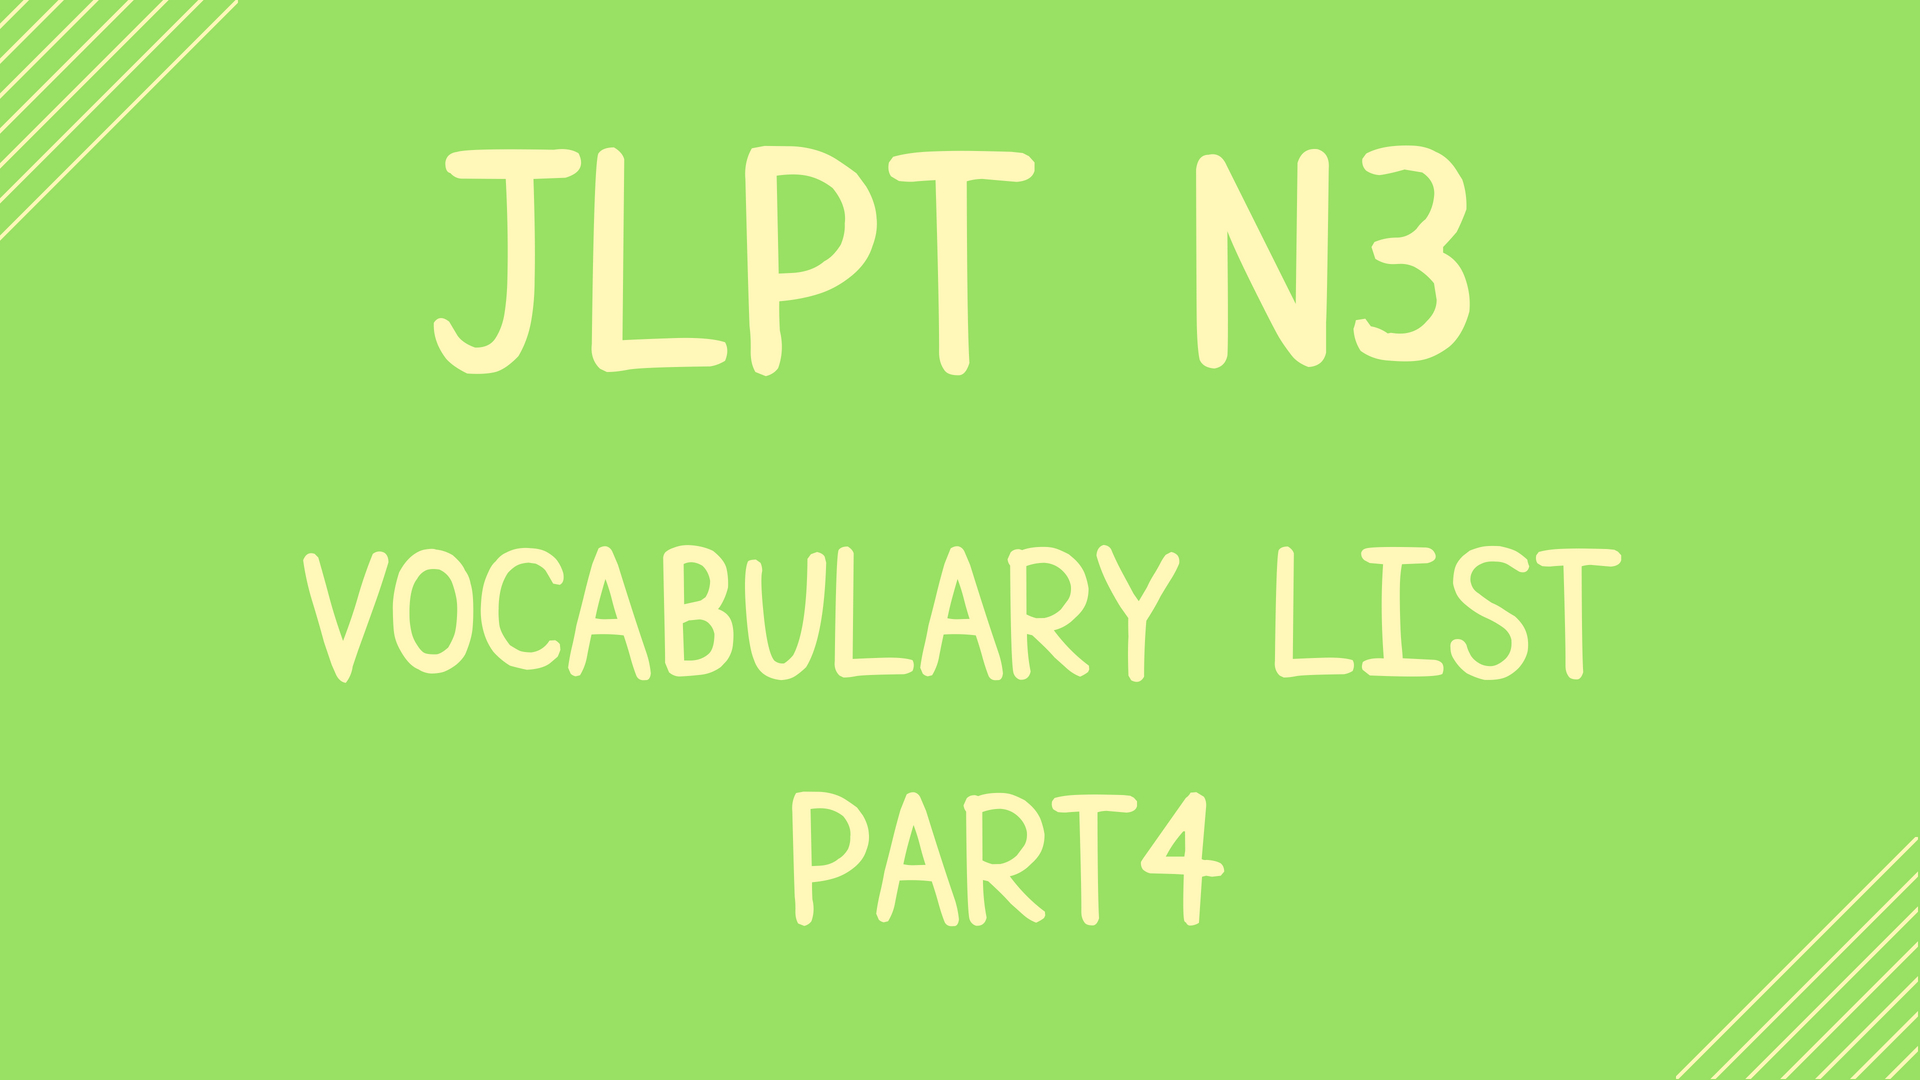 【JLPT N3】Vocabulary List Part4